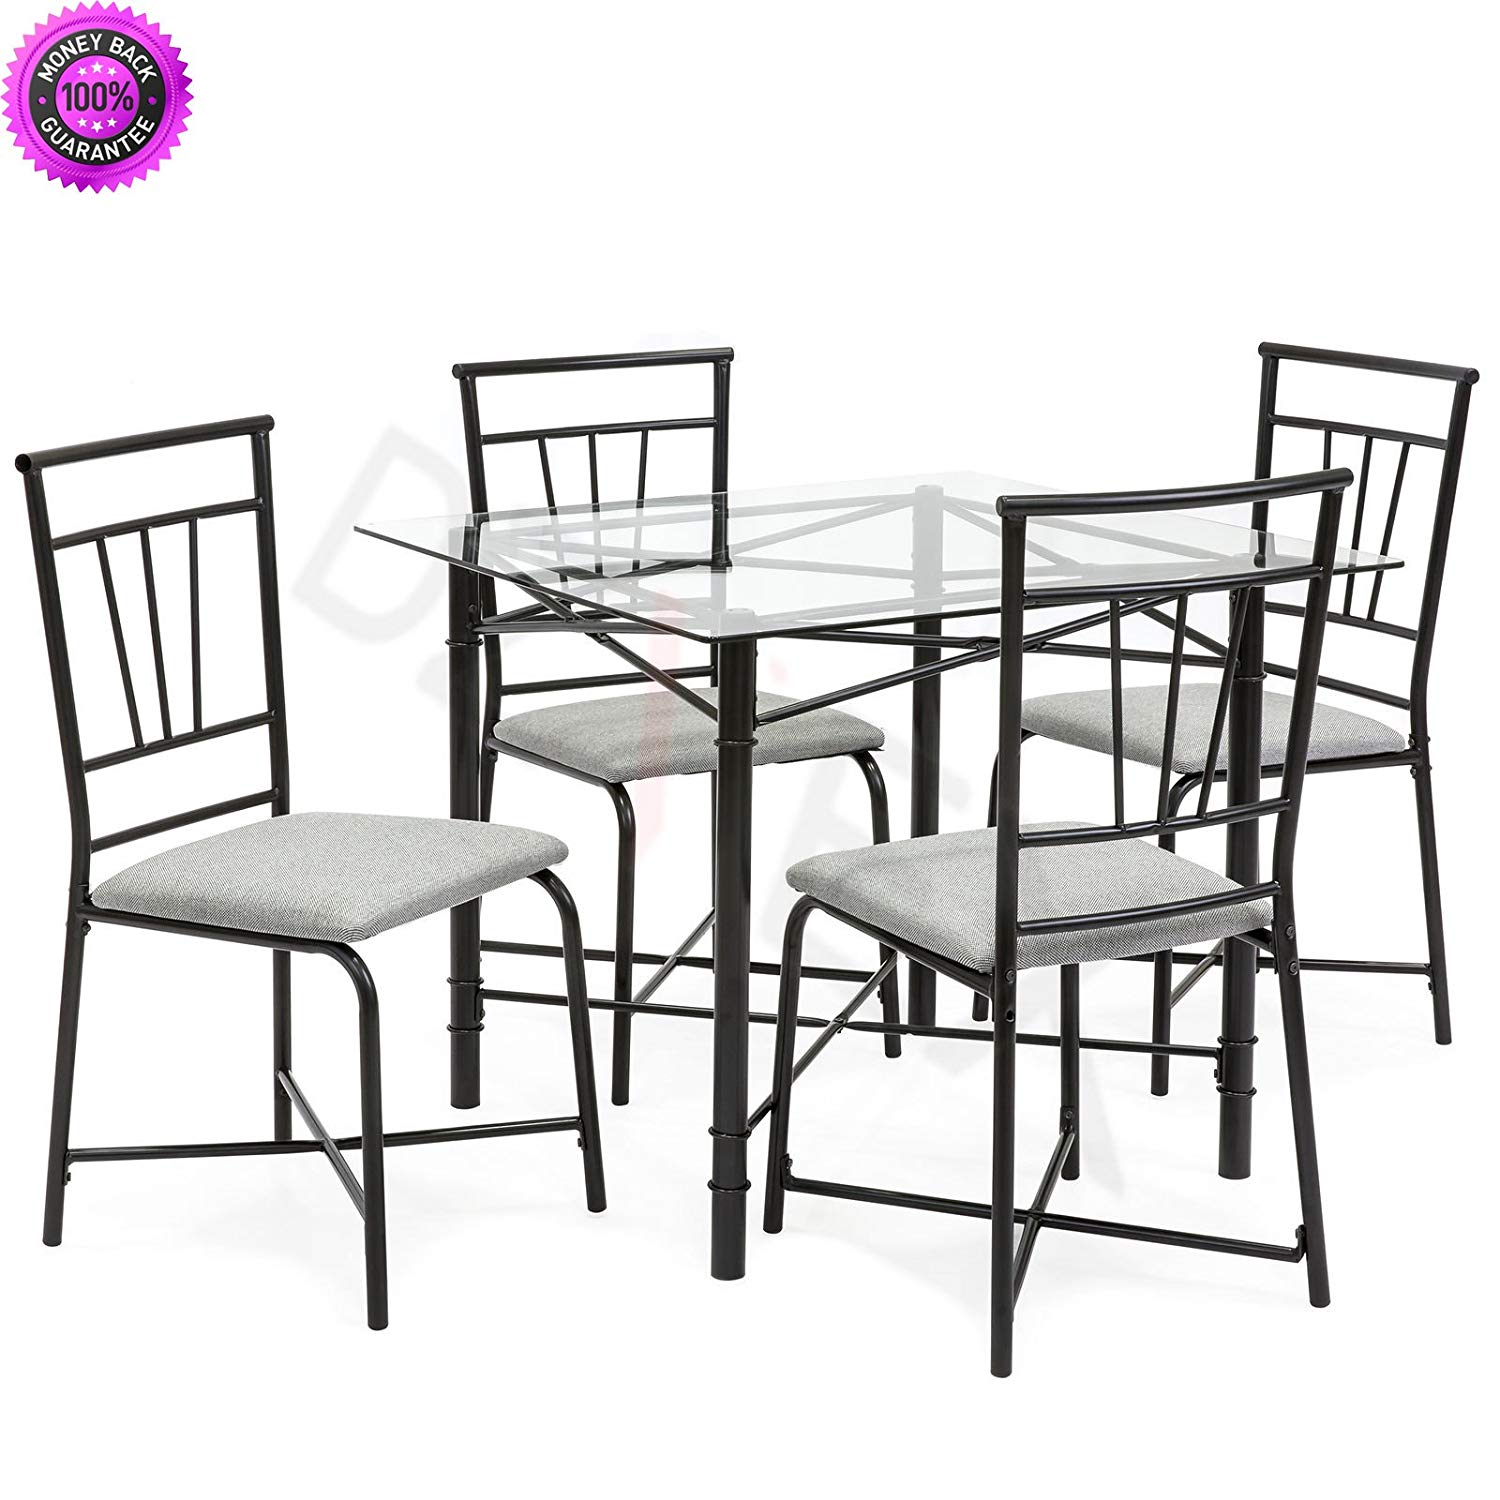 Dining Table Sets Deals: Cheap Round Dining Tables Sets, Find Round Dining Tables